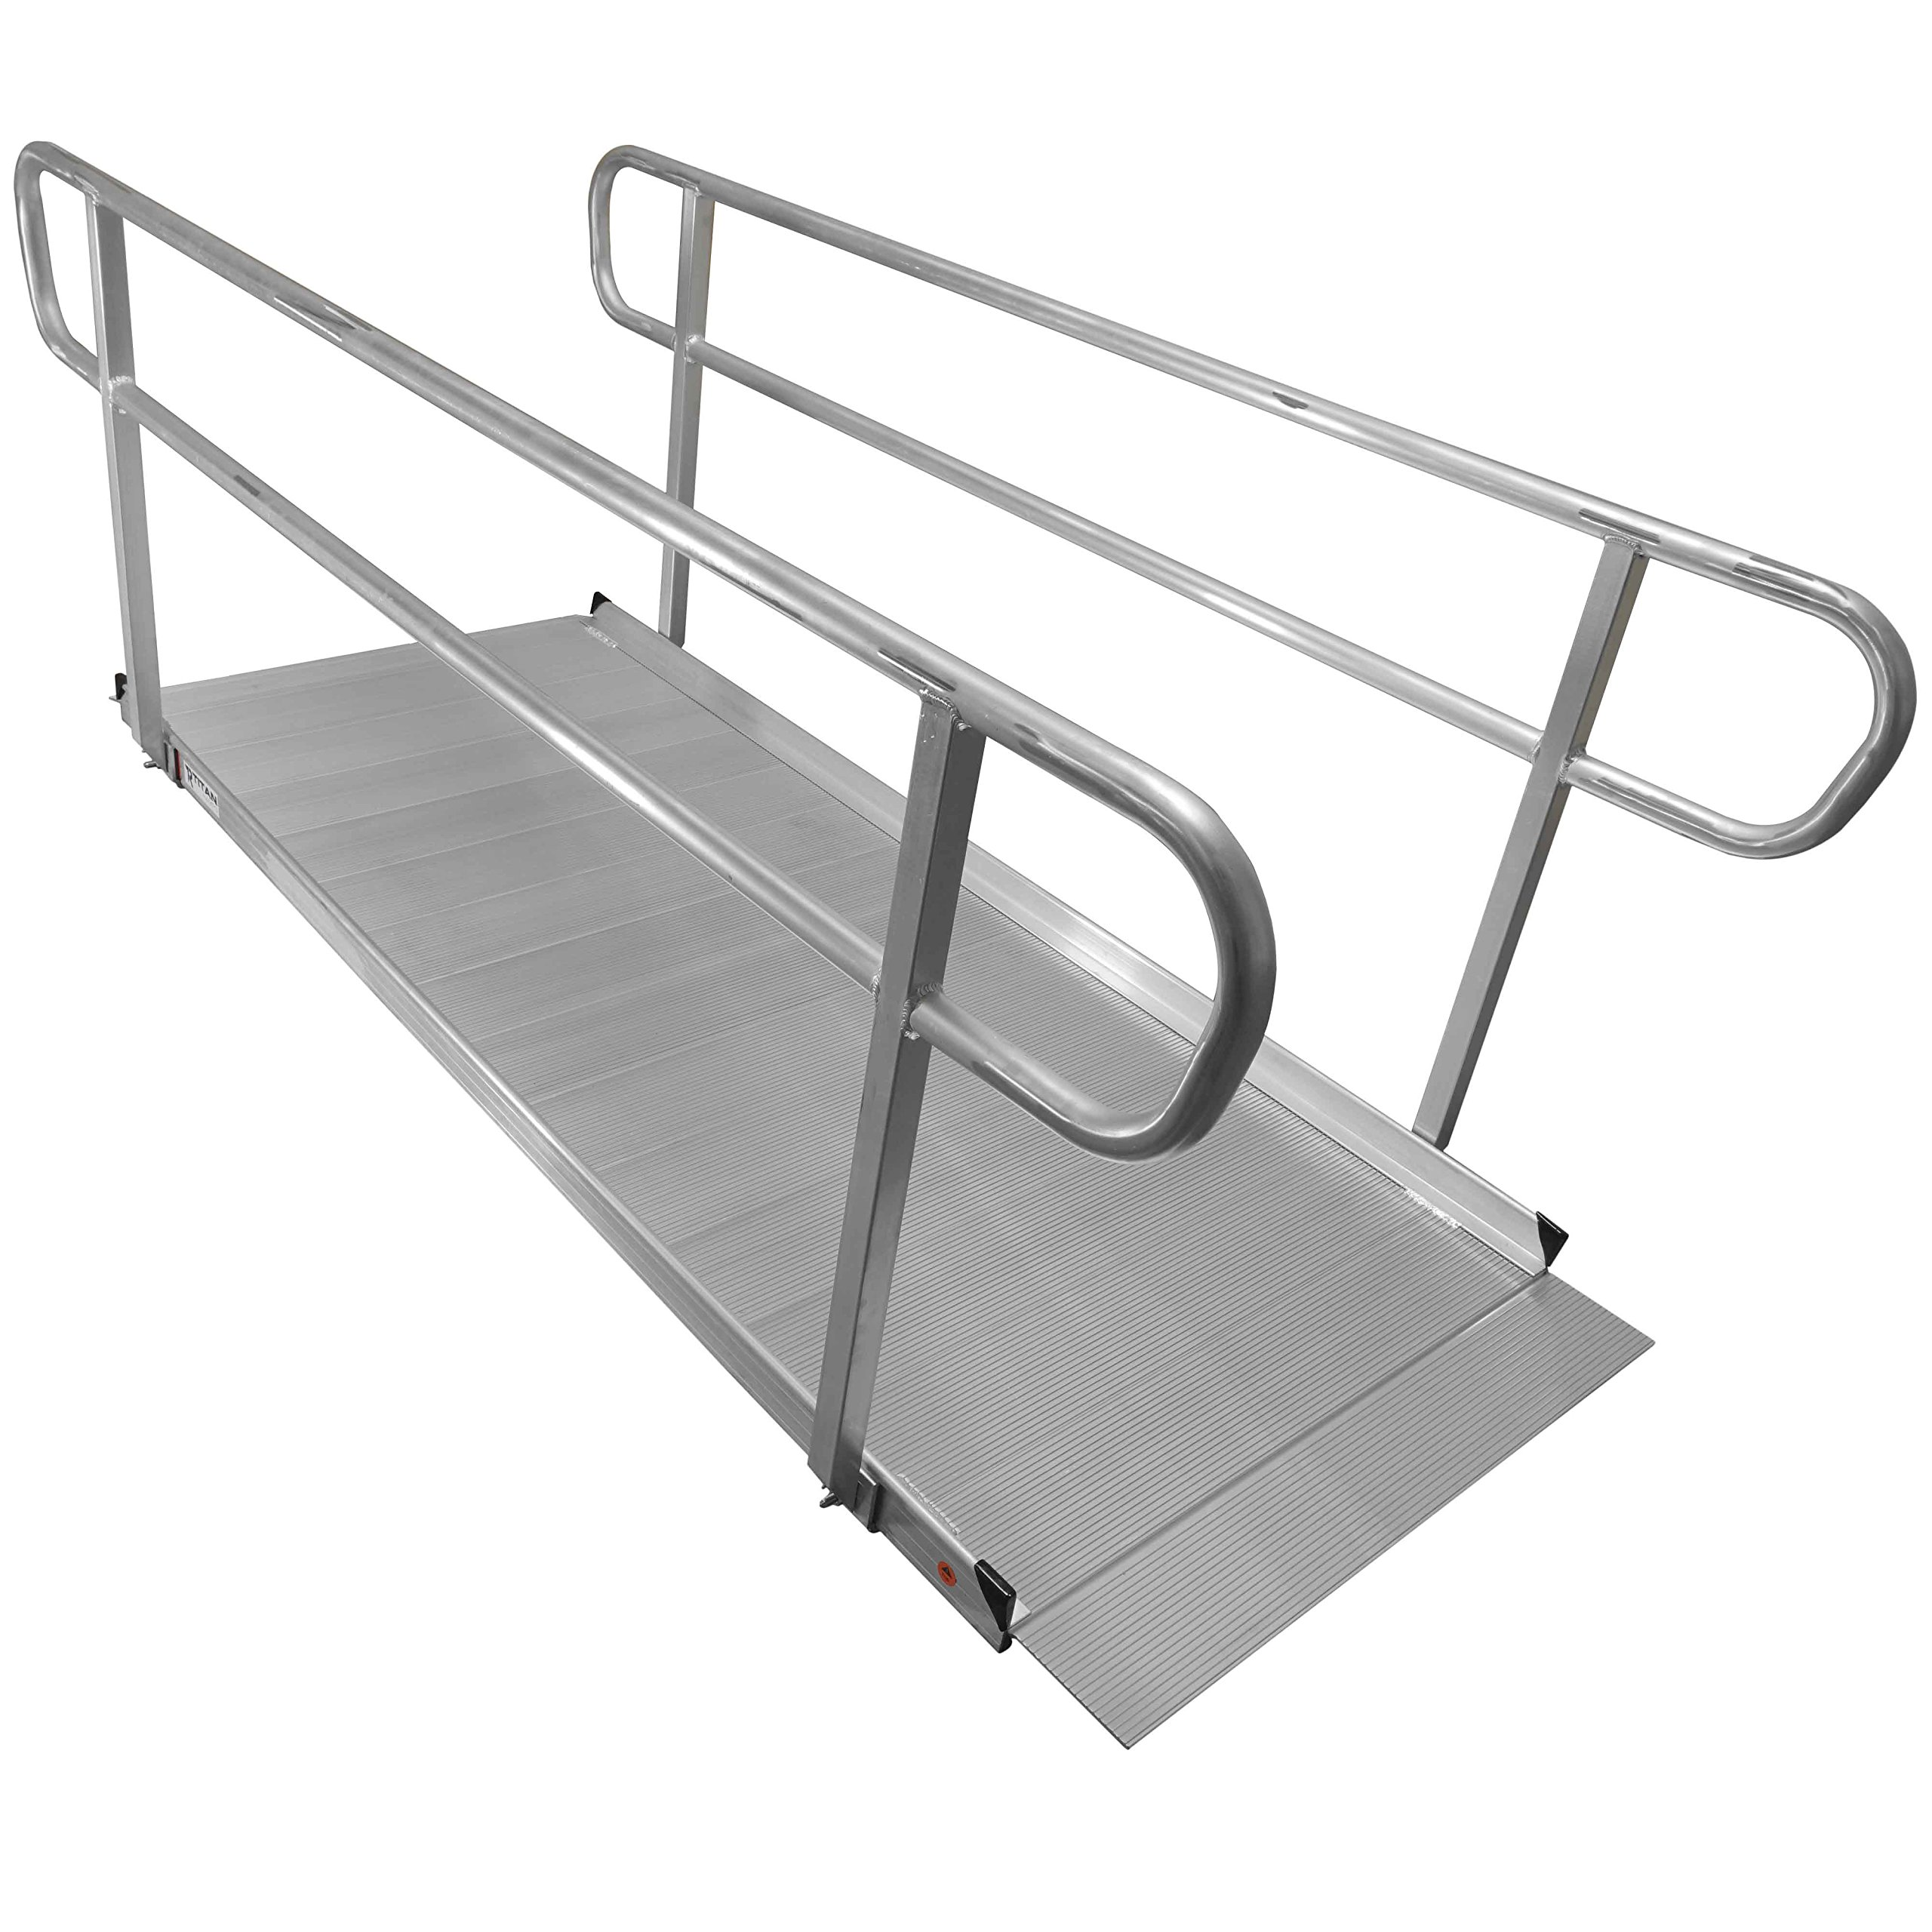 8′ Aluminum Wheelchair Entry Ramp & Handrails Solid Surface Scooter Mobility Access